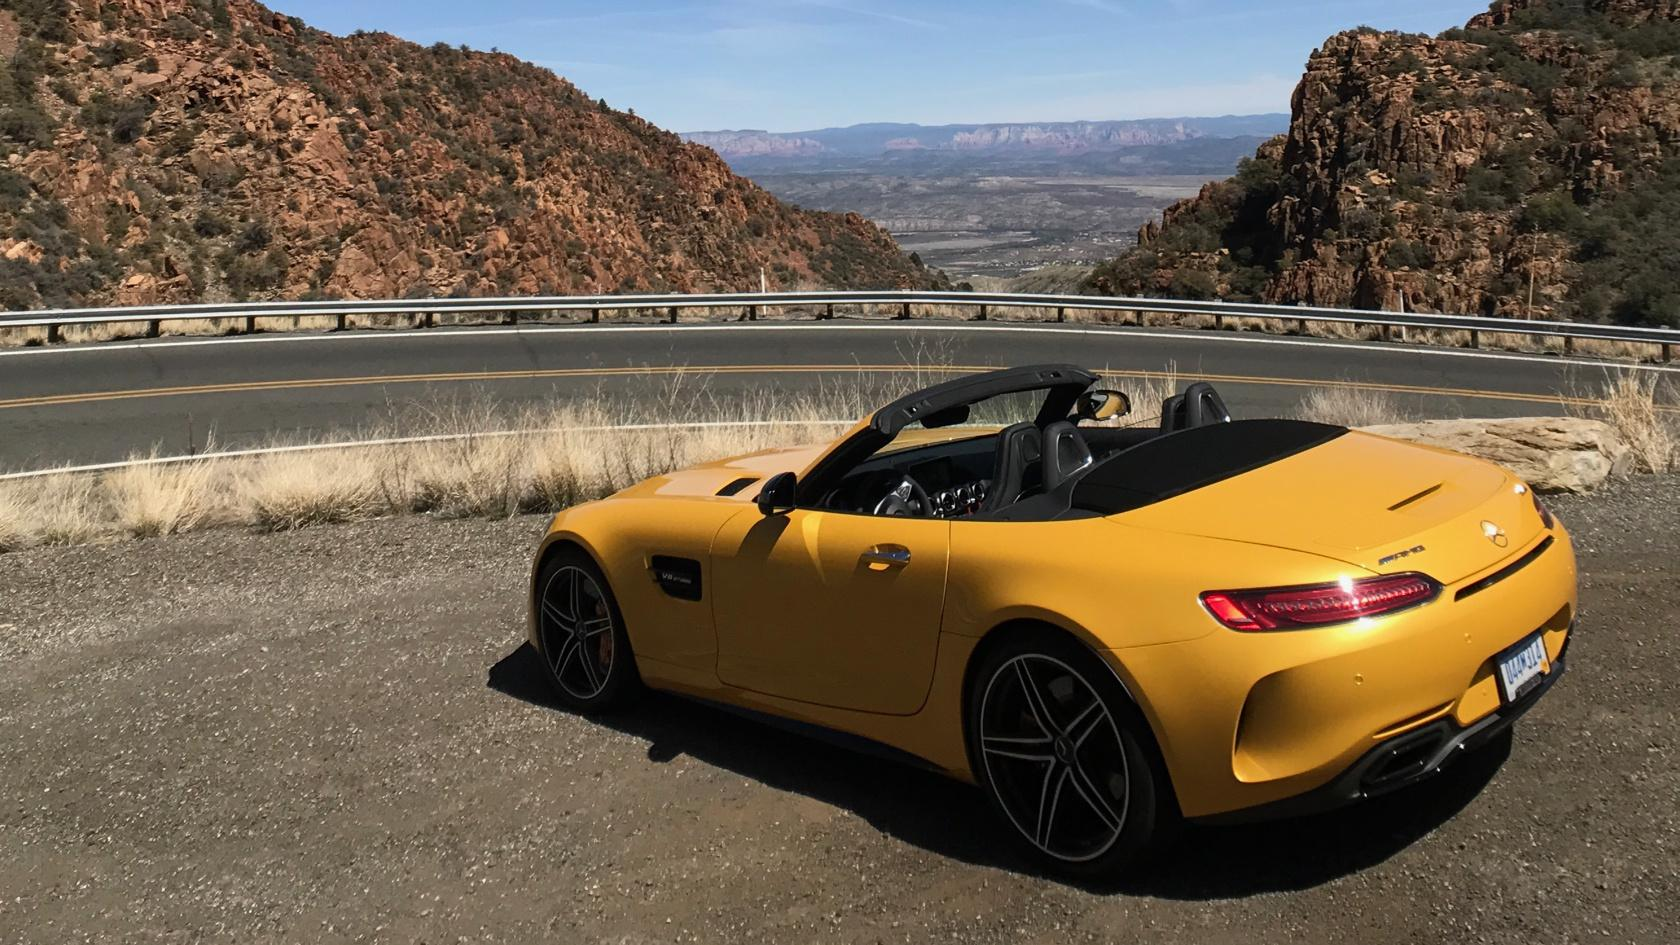 2018 Mercedes-AMG GT C Roadster First Drive: A silver bullet